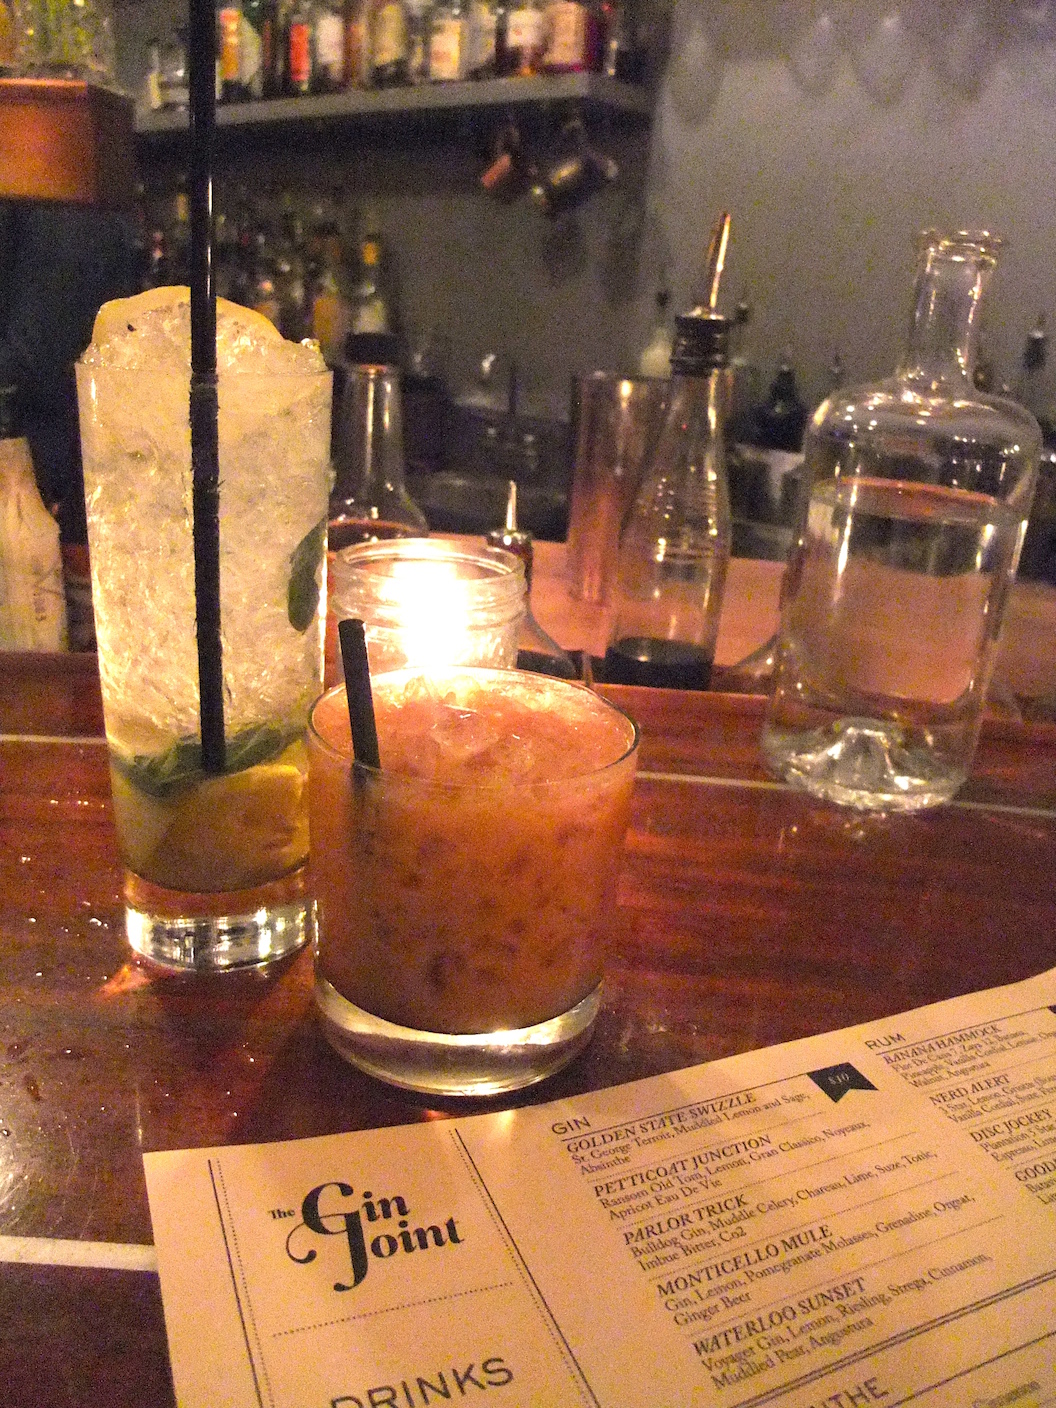 More gin drinks at The Gin Joint